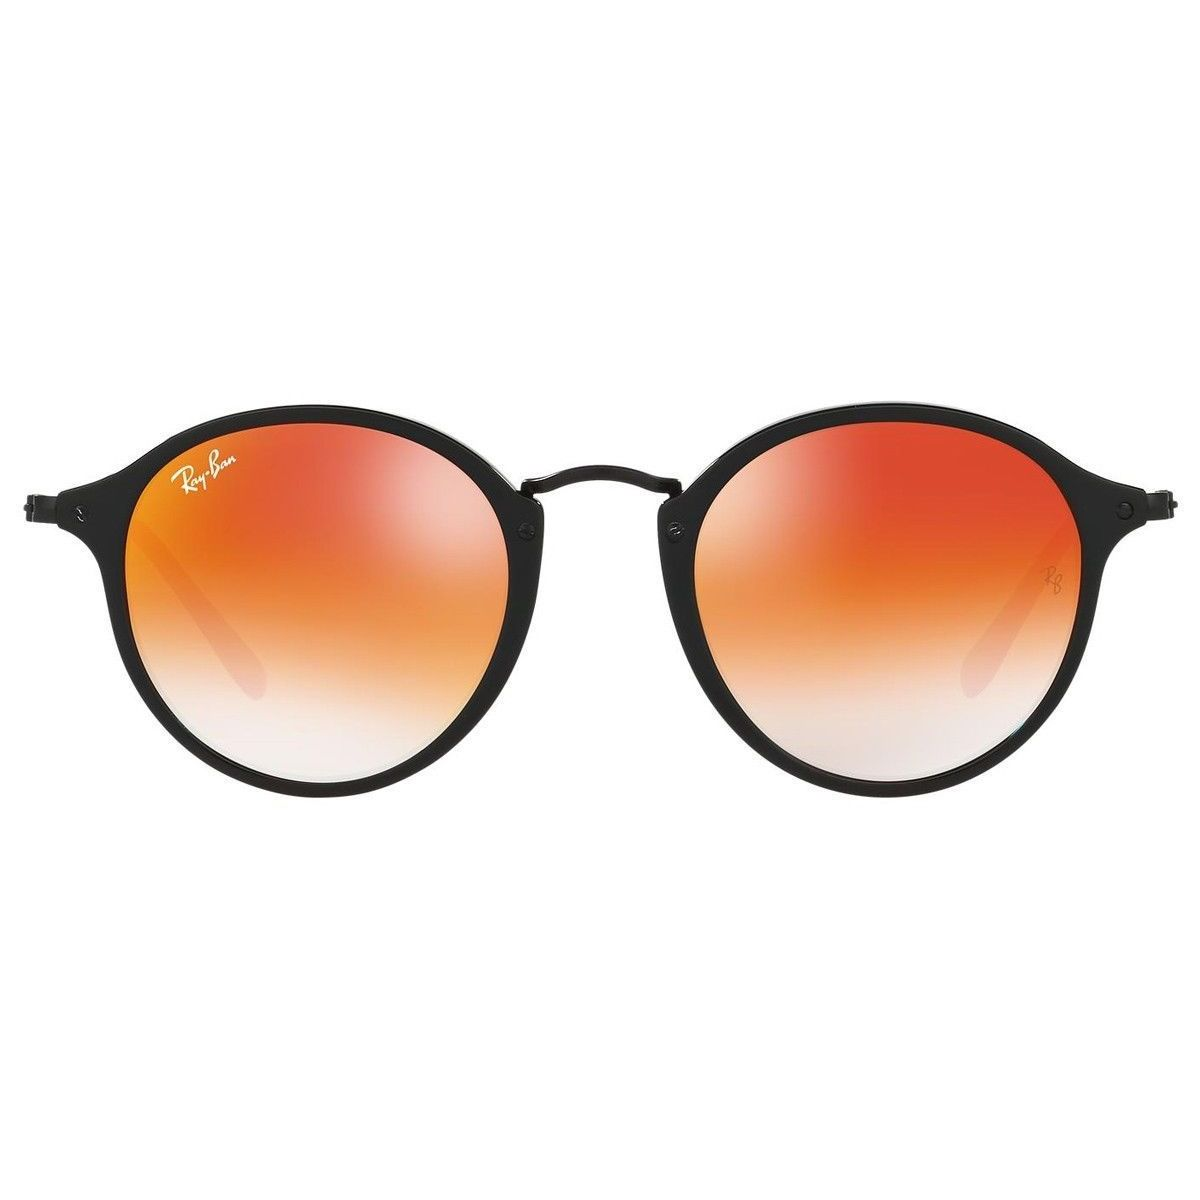 fb2c14605bb Shop Ray-Ban RB2447 901 4W Round Fleck Black Frame Orange Gradient Flash  52mm Lens Sunglasses - Ships To Canada - Overstock - 14276934